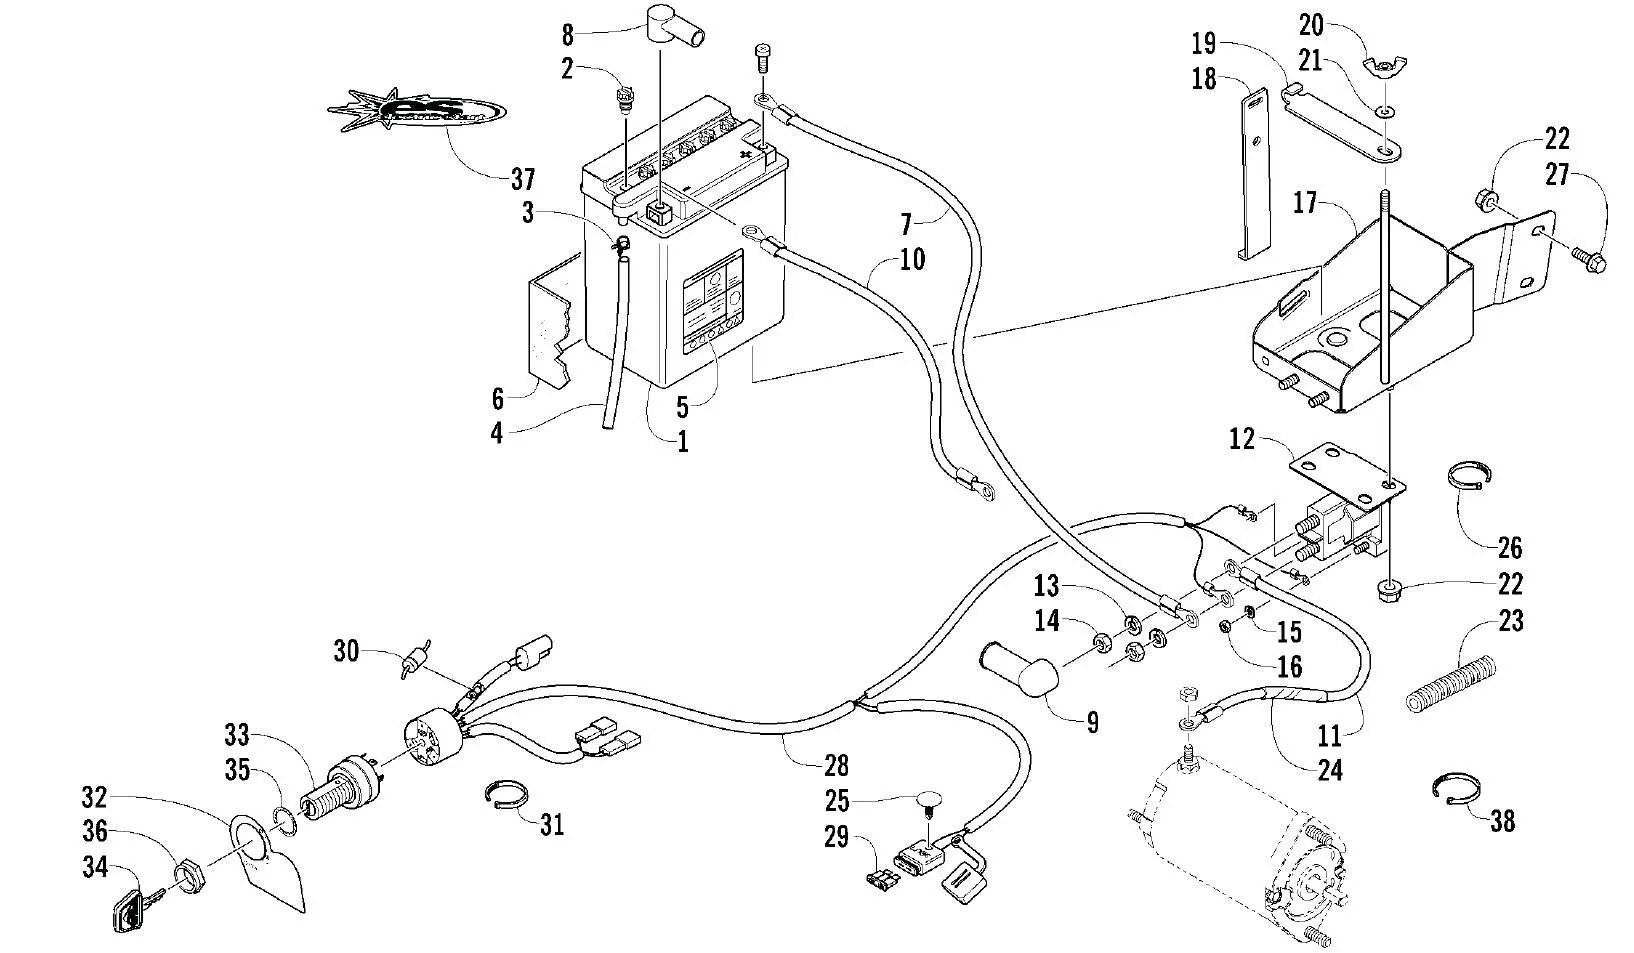 hight resolution of 2002 arctic cat wiring diagram wiring diagrams rh 29 treatchildtrauma de arctic cat atv 300 wiring diagram 1999 arctic cat 300 4x4 wiring diagram